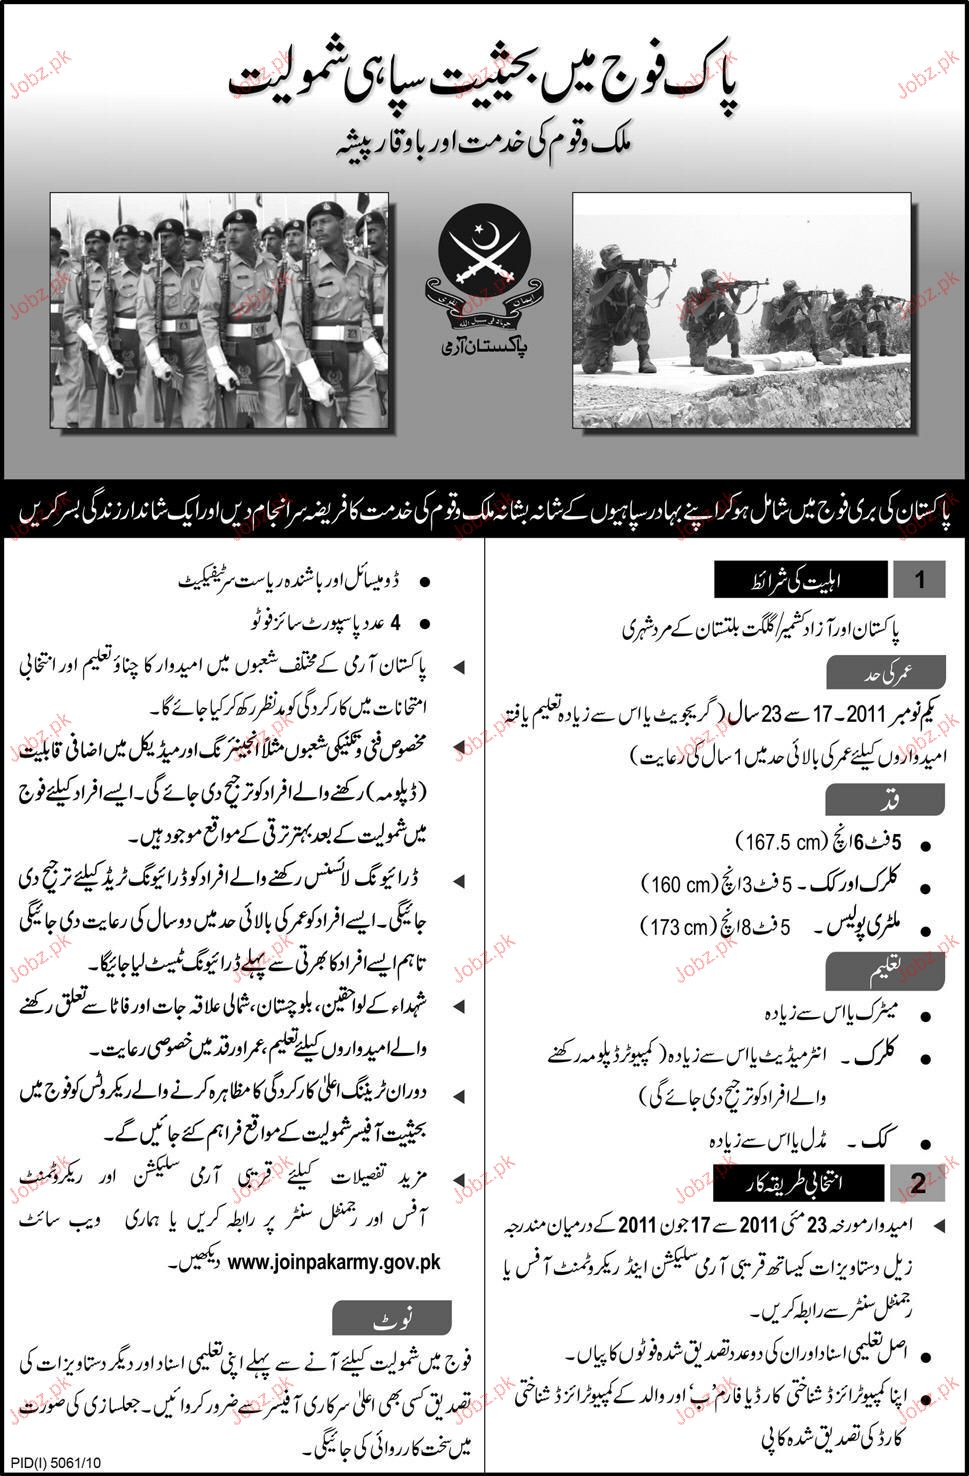 recruitment in pak army 2019 job advertisement pakistan